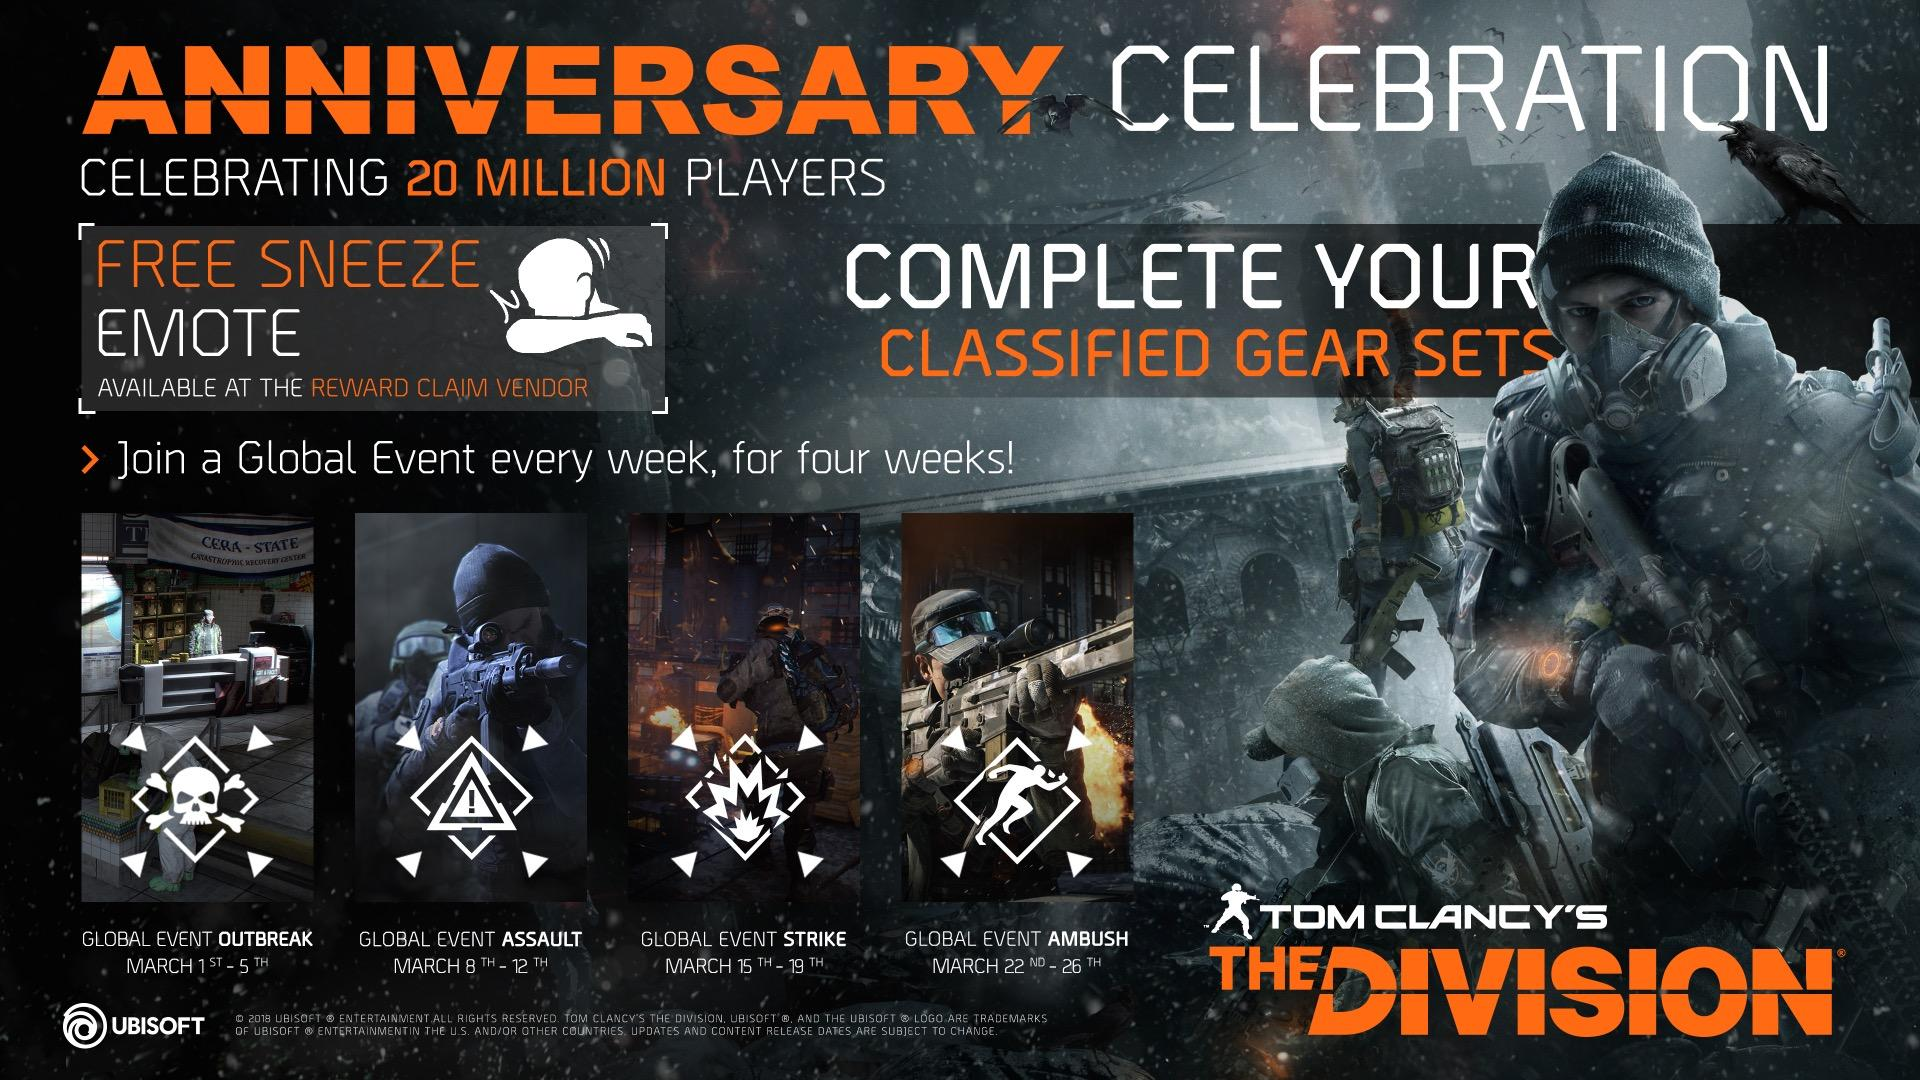 The Division Turns 2, Reaches 20 Million Players Milestone